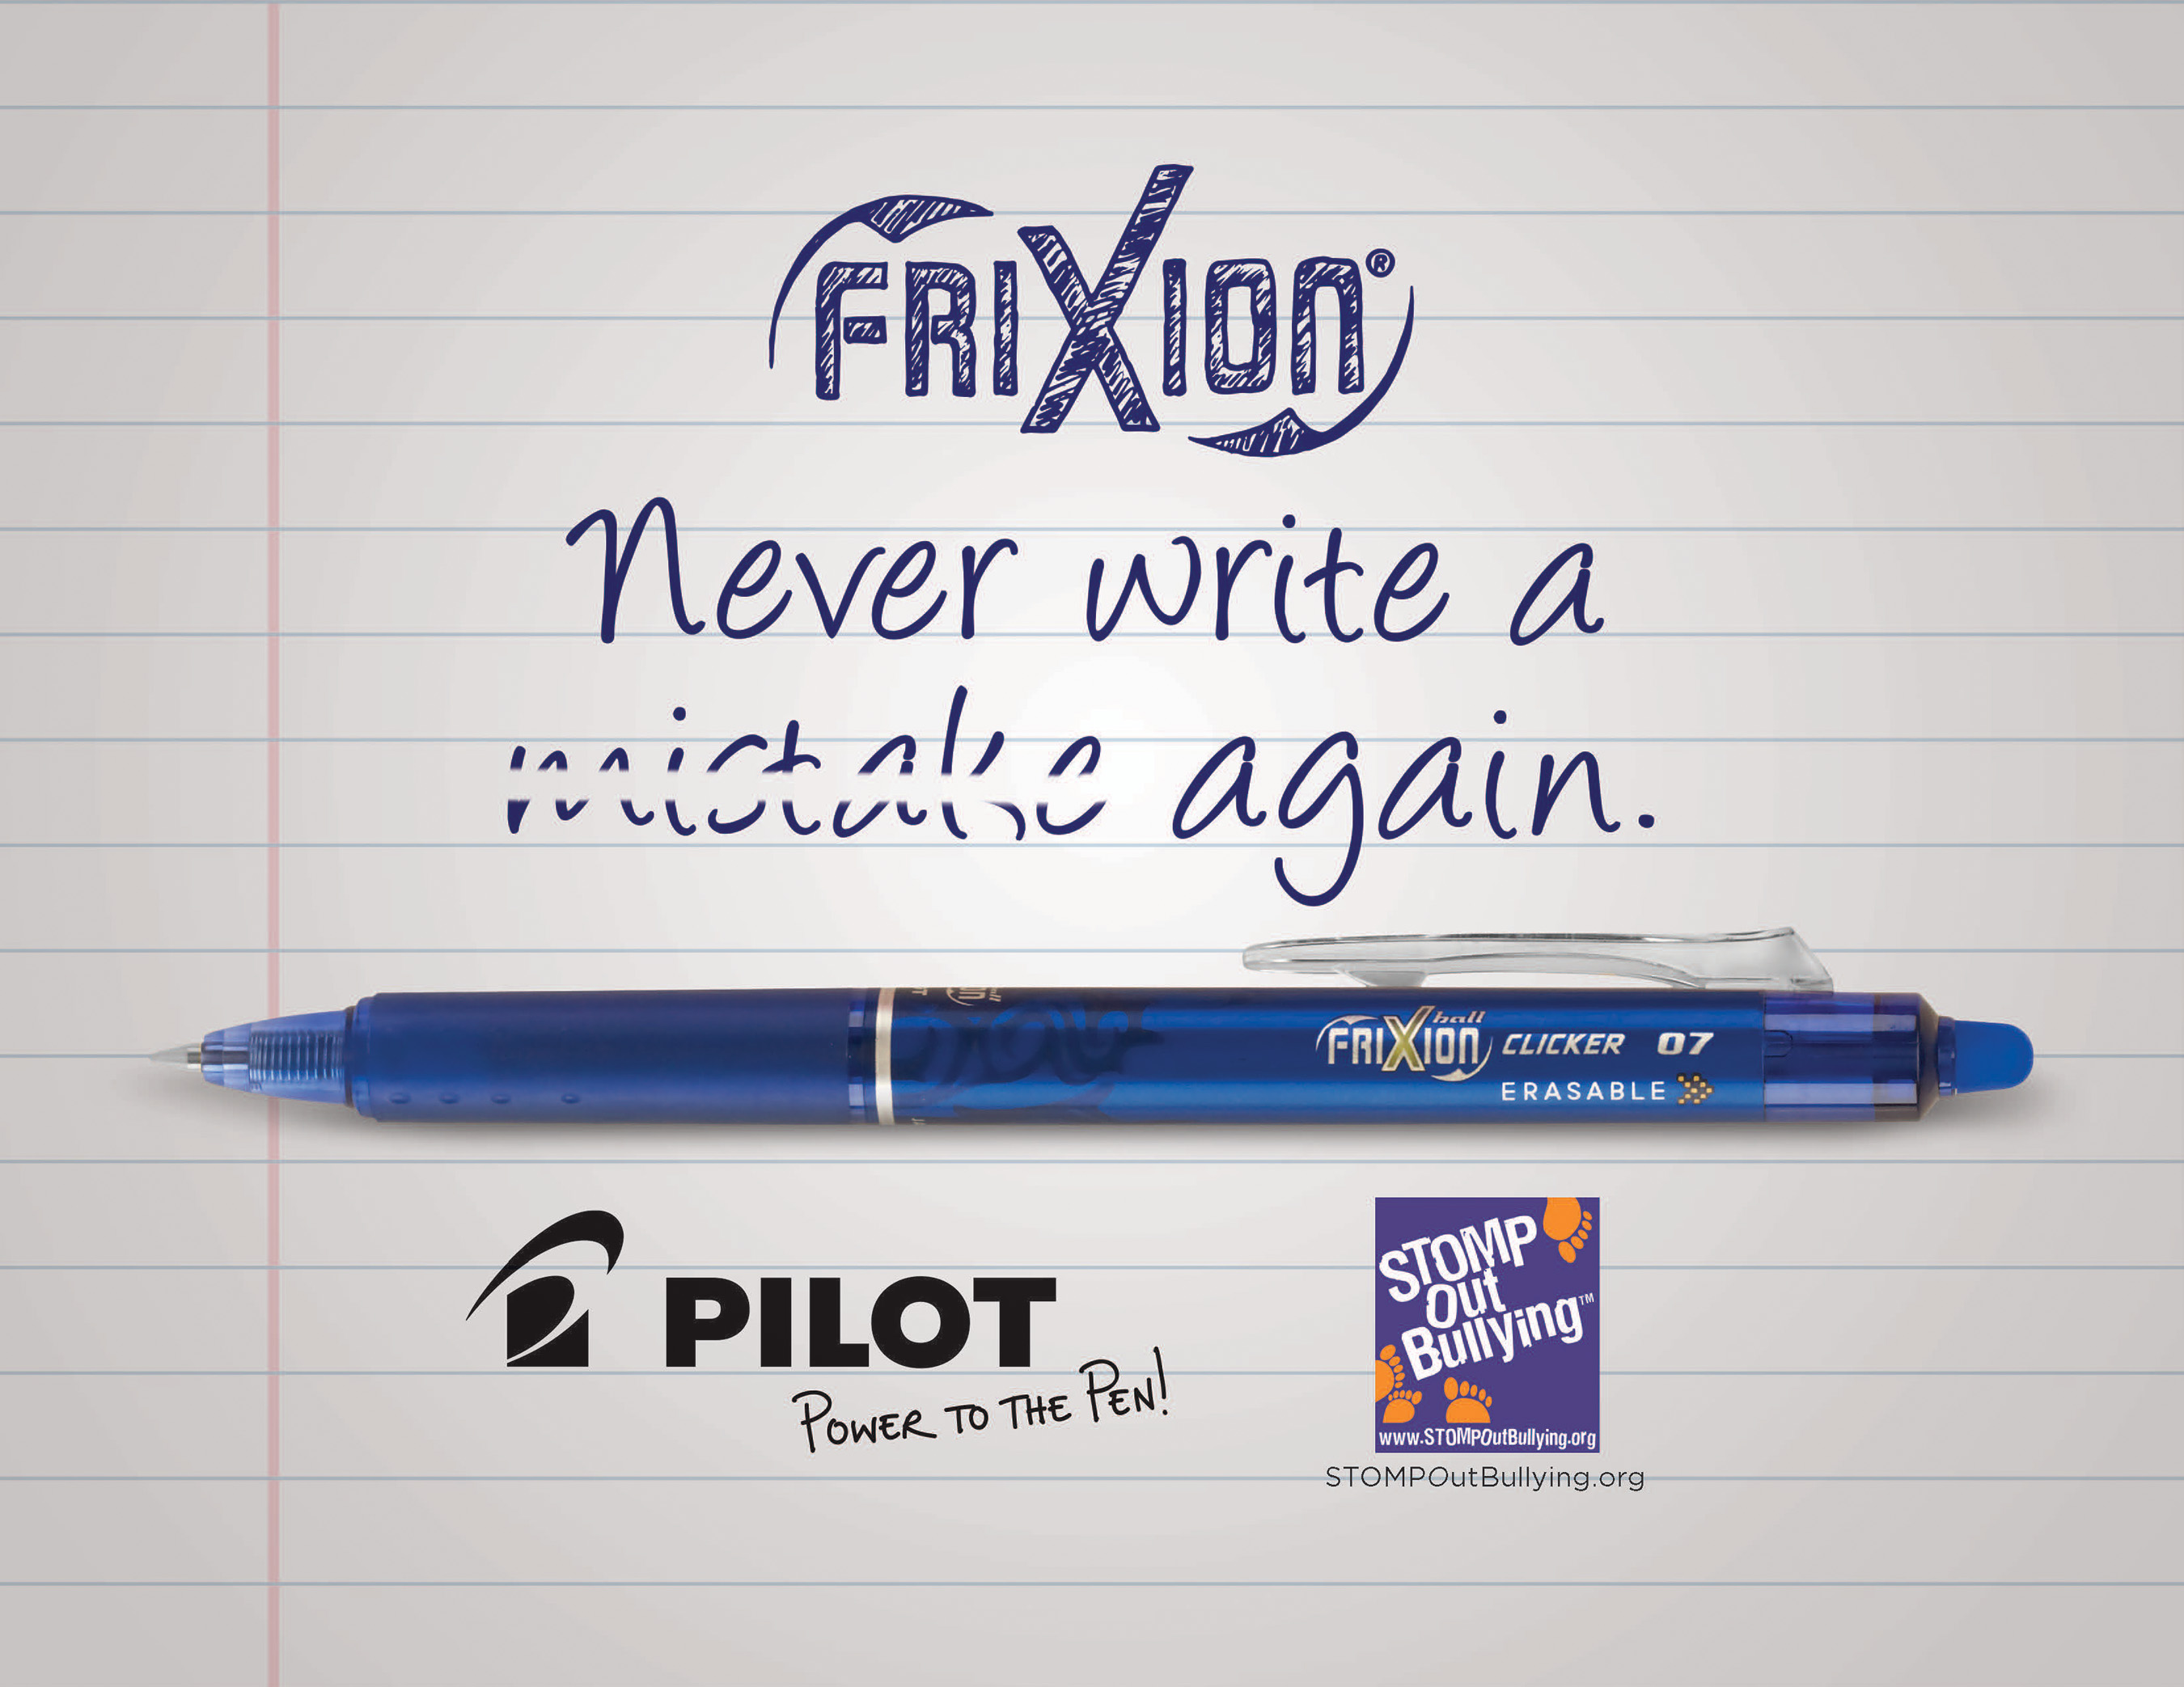 Purchase Pilot's FriXion Clicker to help 'Erase Bullying For Good' in Schools through support of STOMP Out Bullying.